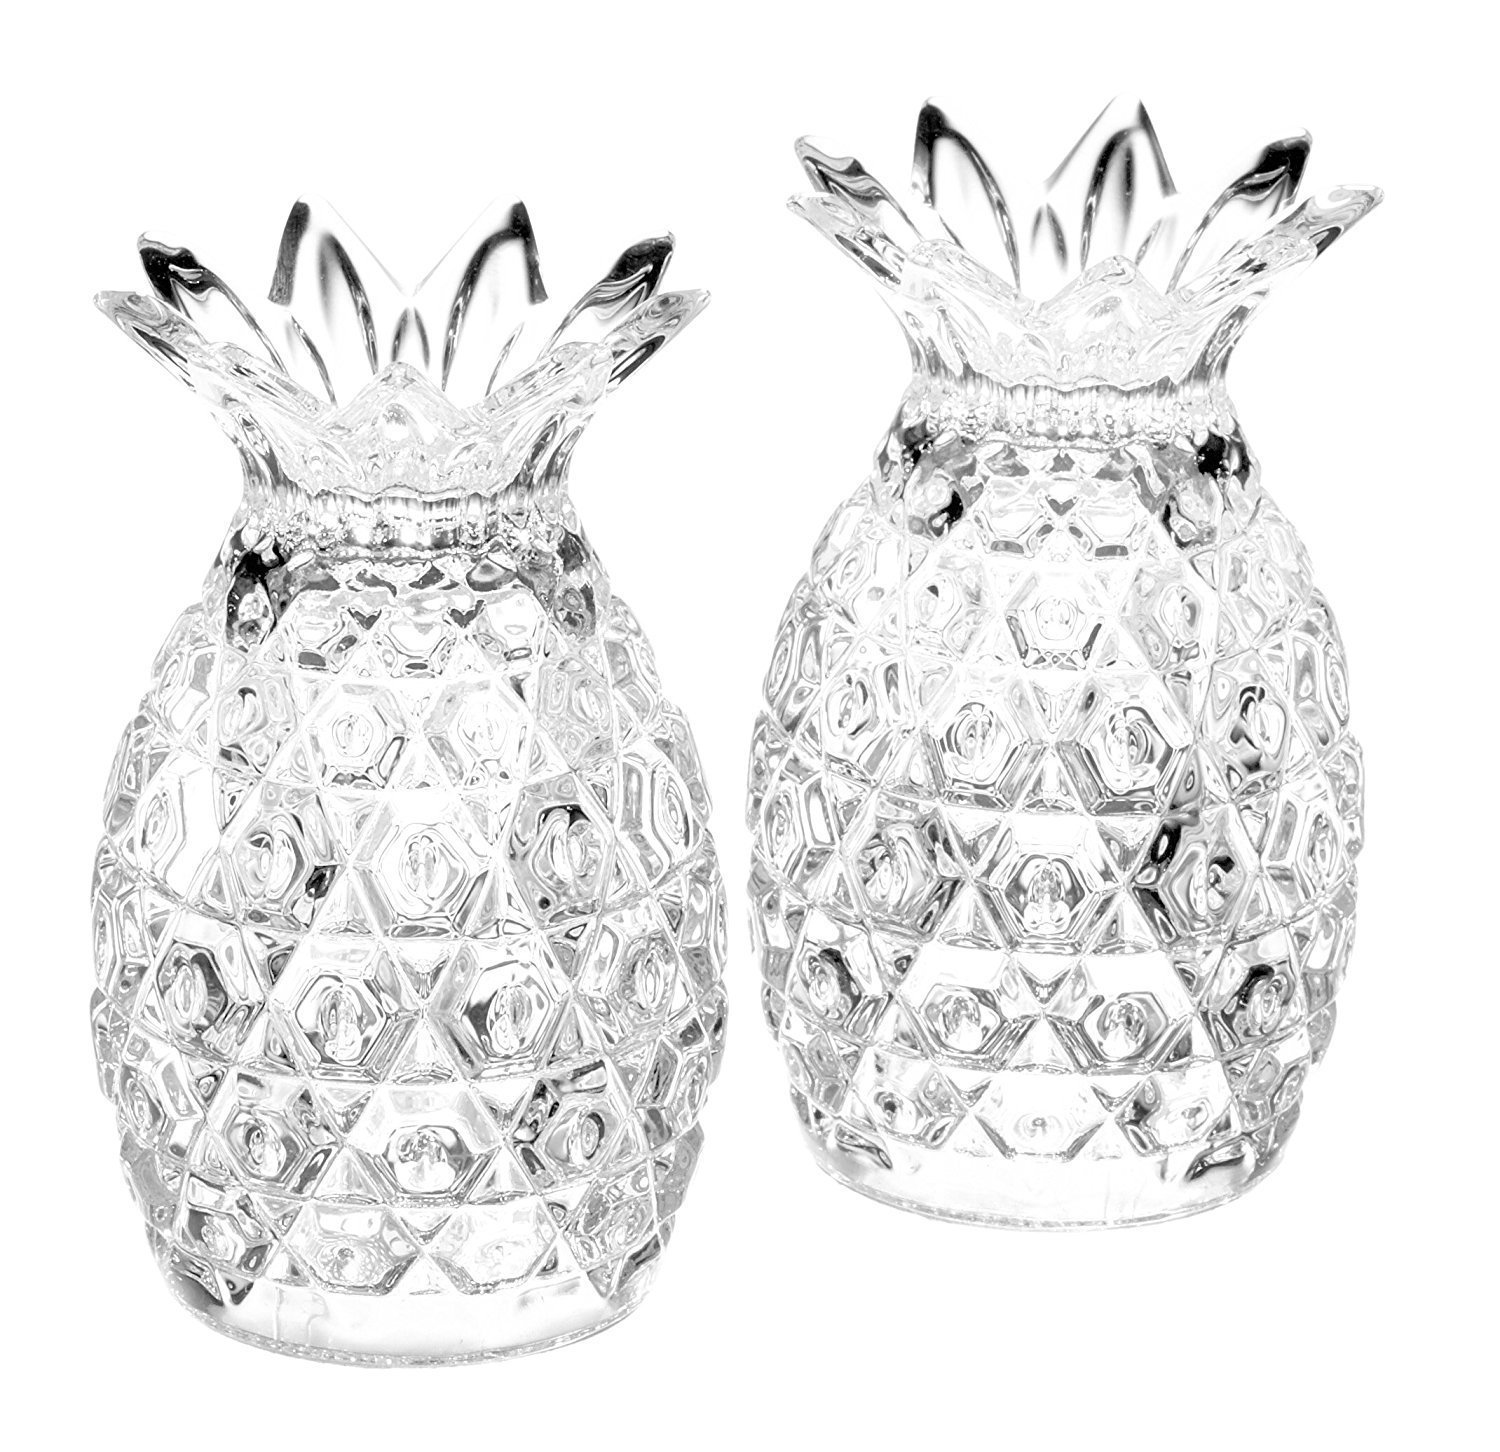 King International 100% Crystal Glass diamond cut Salt and Pepper | Set of 2 Pieces 8 cm | with Sturdy stopper |